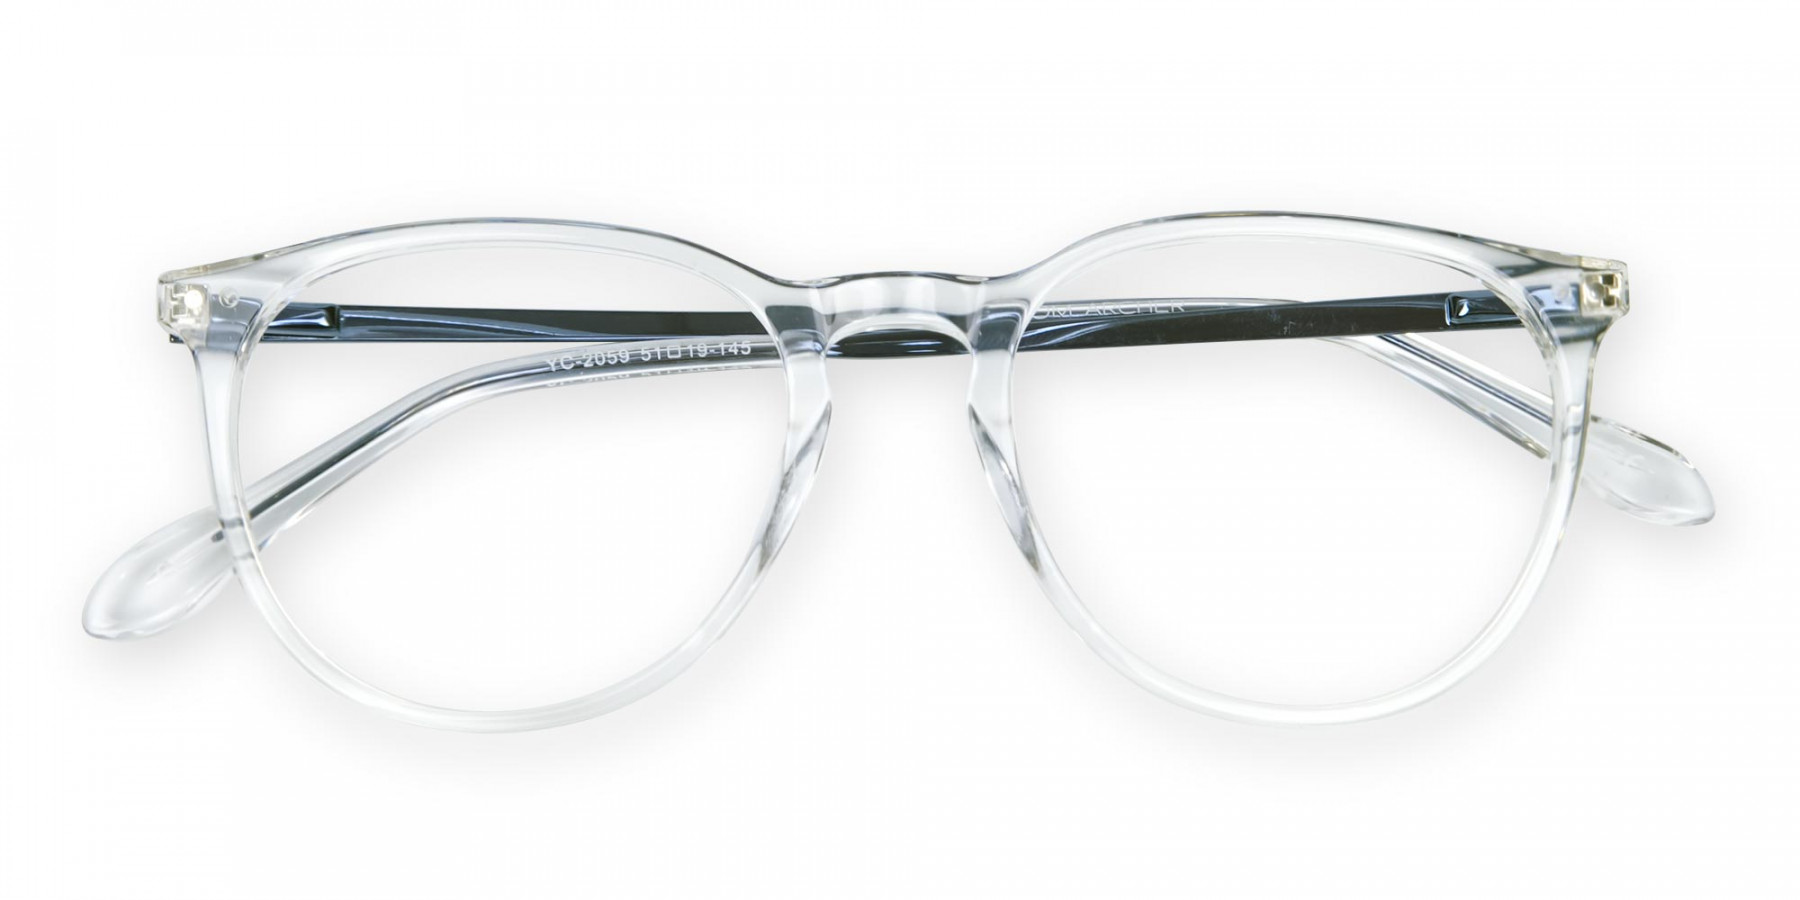 Rimless-Alike Crystal Clear Glasses